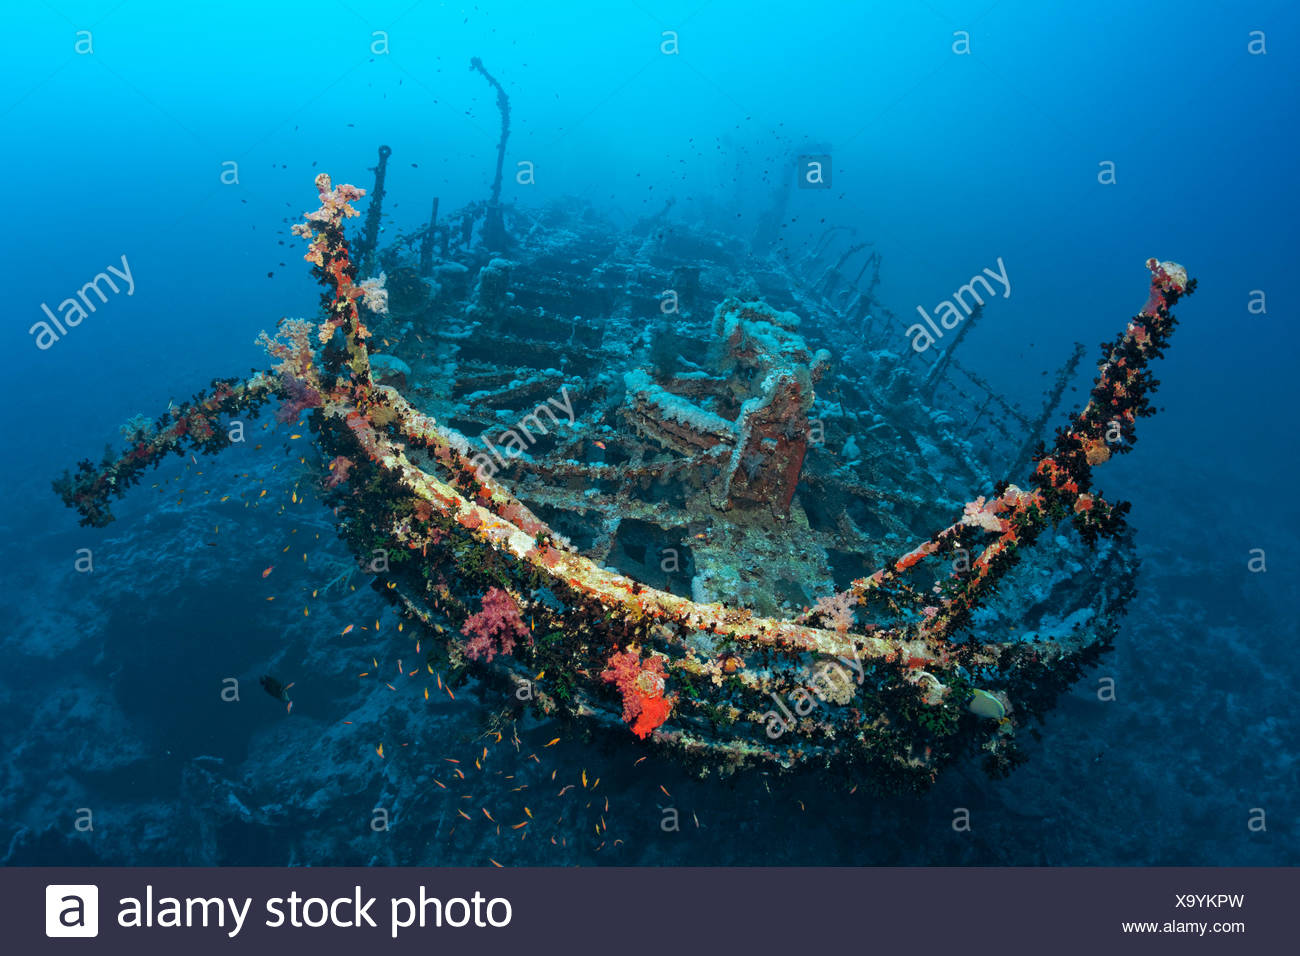 Aida shipwreck, Brother Islands, Egypt - Stock Image